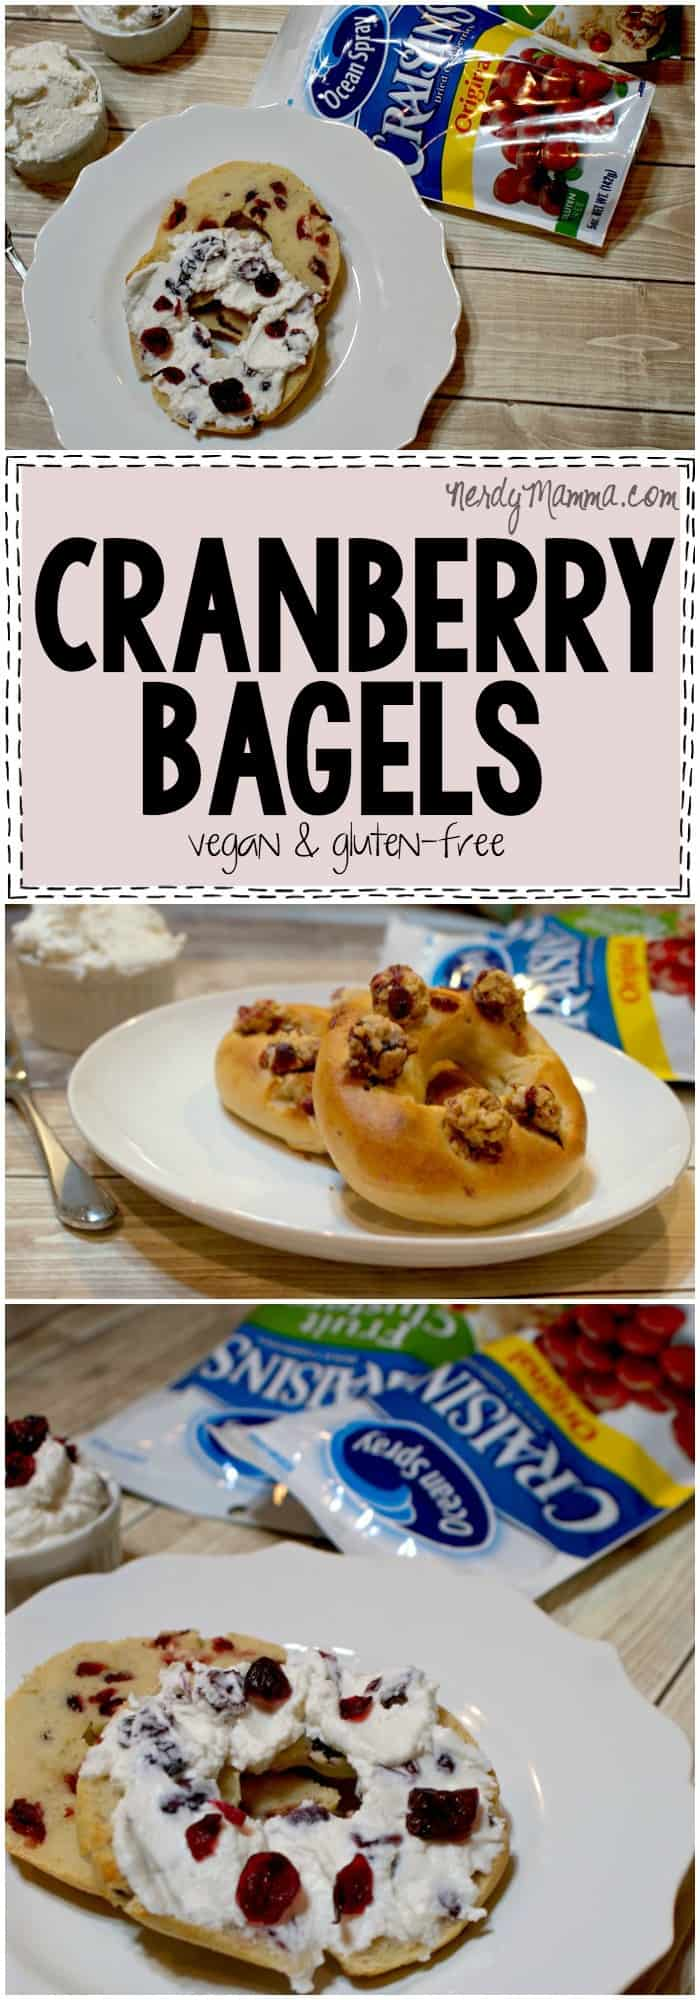 This recipe for vegan and gluten-free cranberry bagels is so fast and easy. And it tastes amazing...So yummy...#ad #BetterWithCraisins #cbias